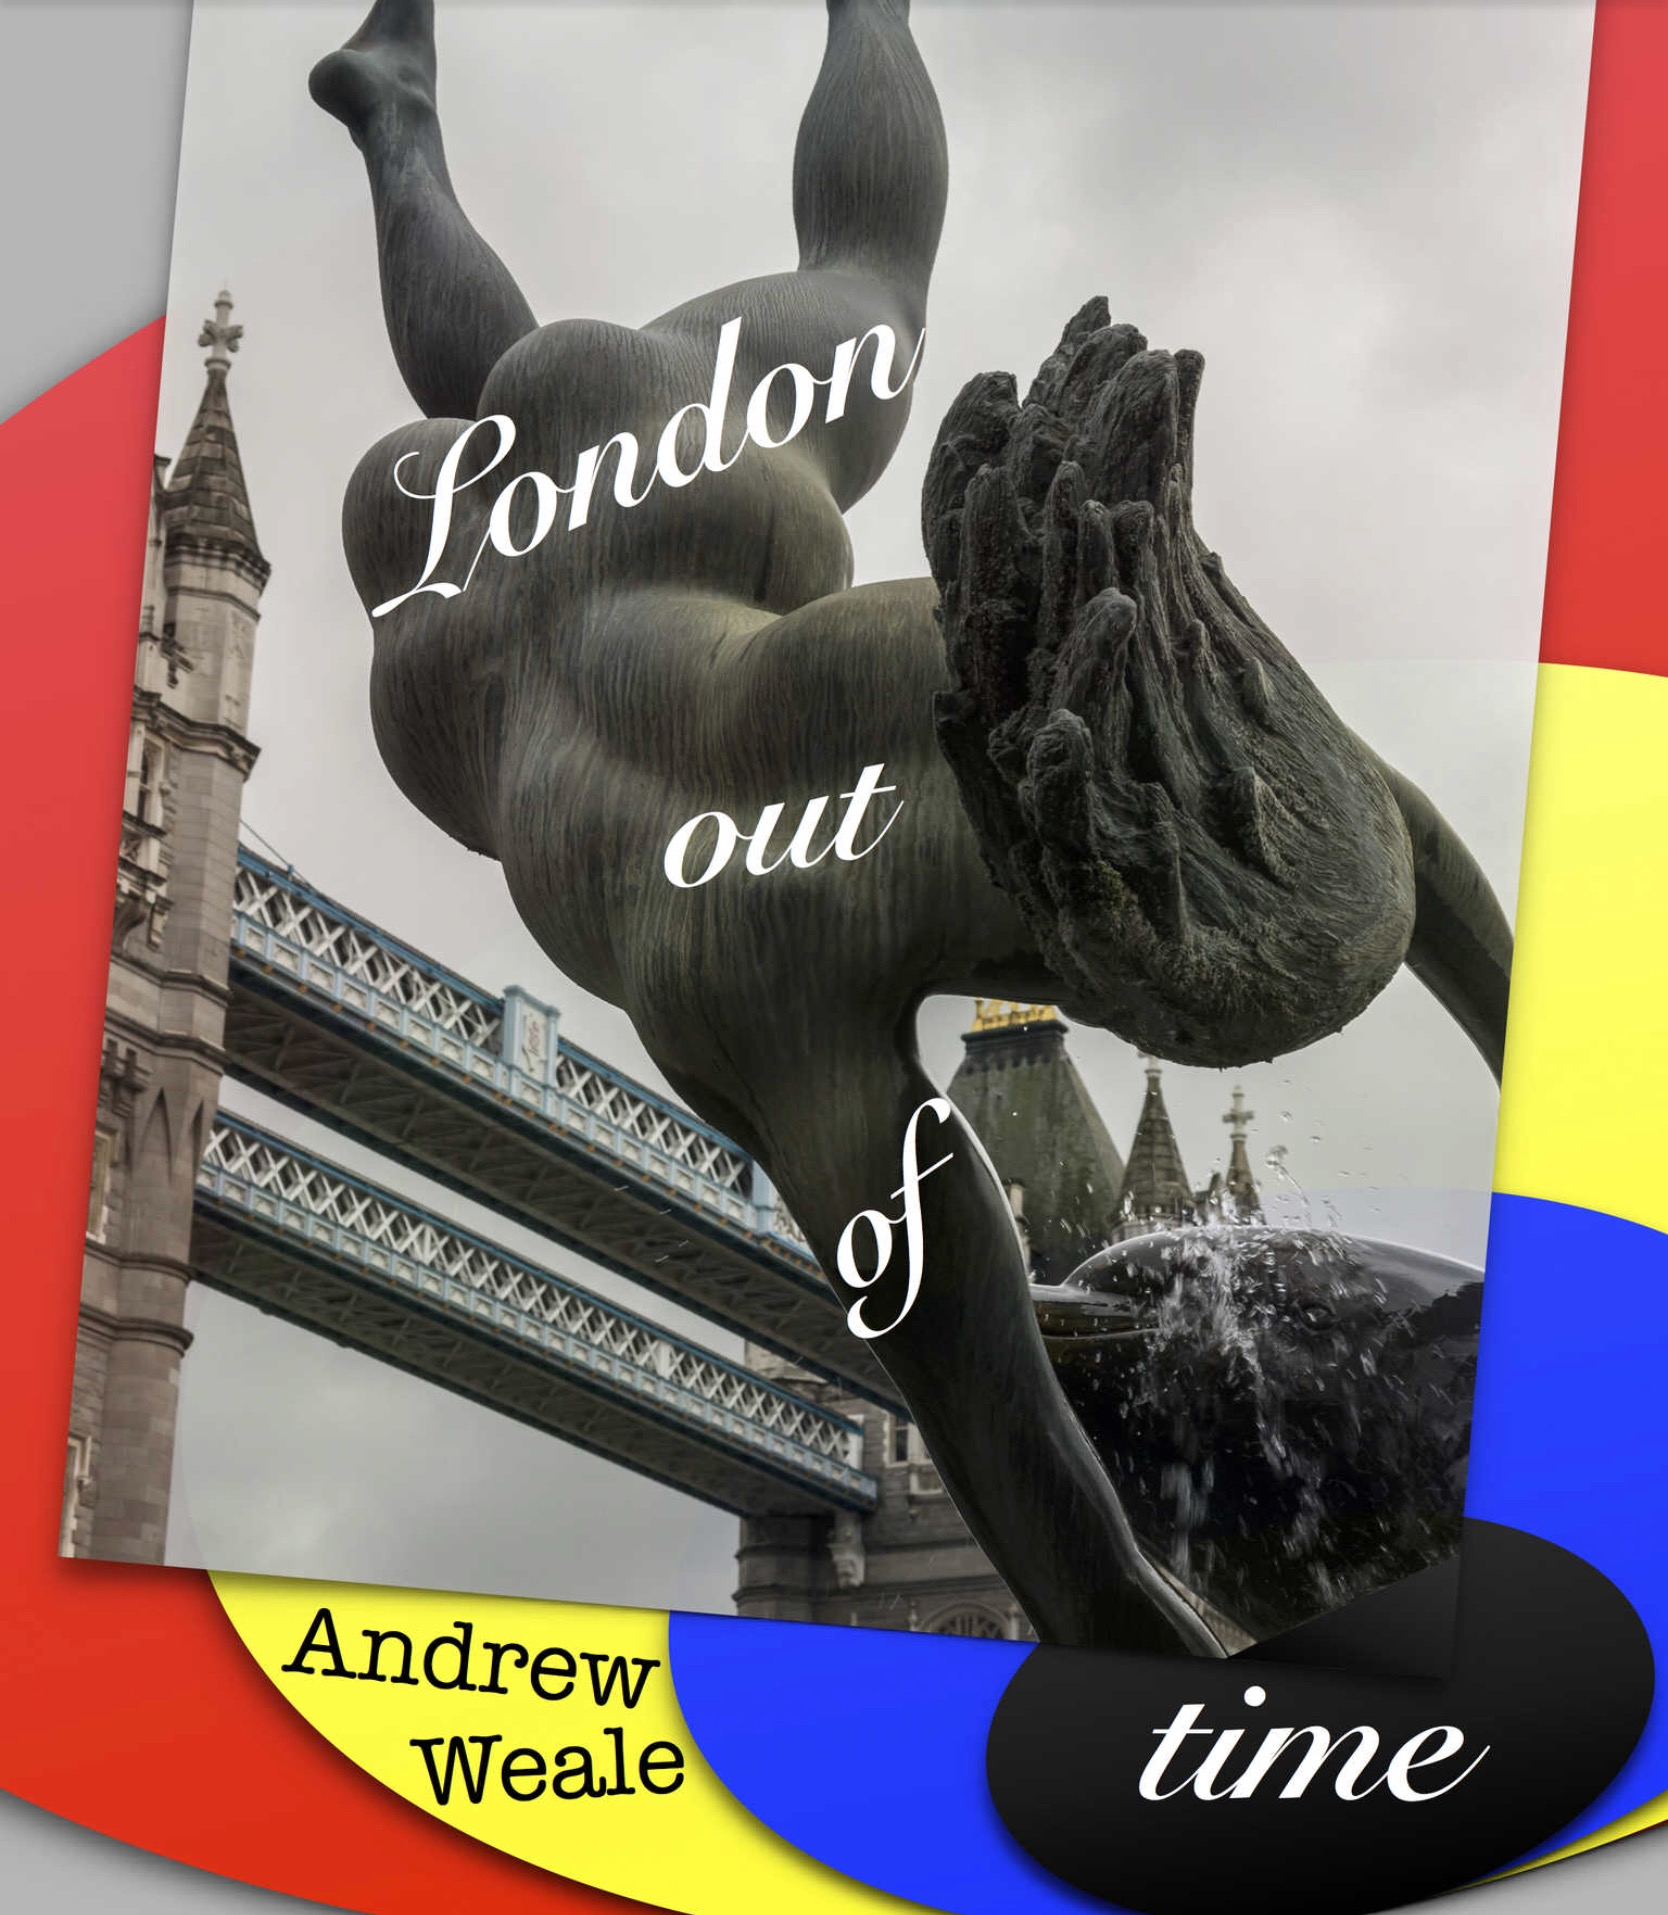 andrew-neale-london-out-of-time.JPG